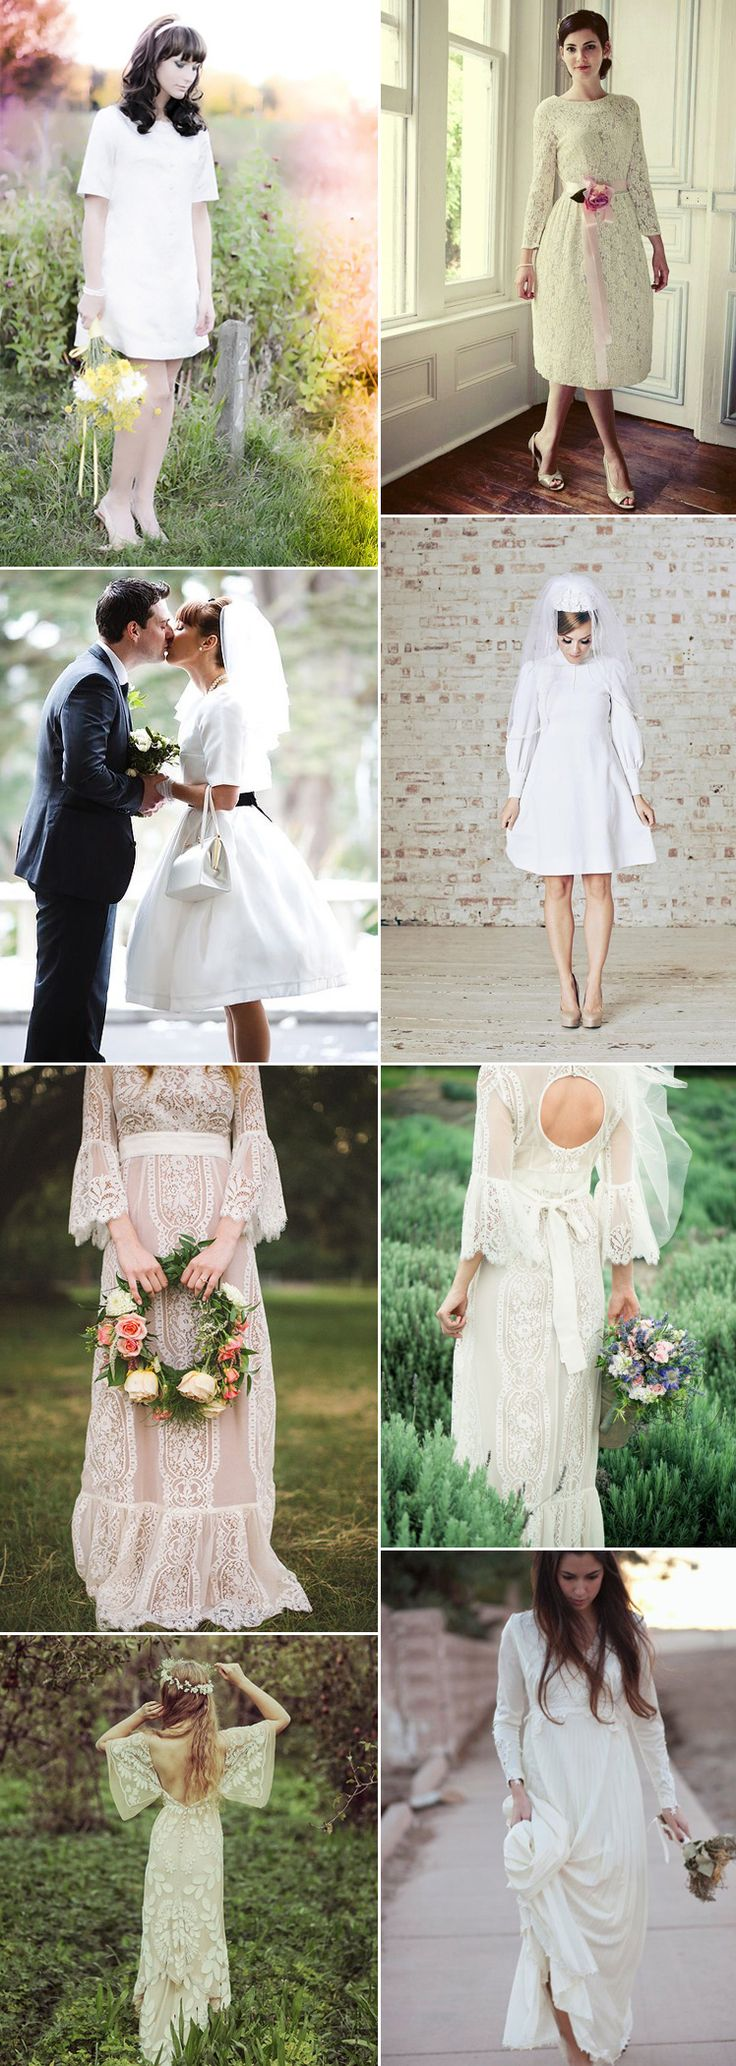 Take a look at wedding dresses perfect for a 1960s or 1970s inspired theme at GS Inspiration on Glitzy Secrets - Wedding Accessories & Vintage Style Jewellery